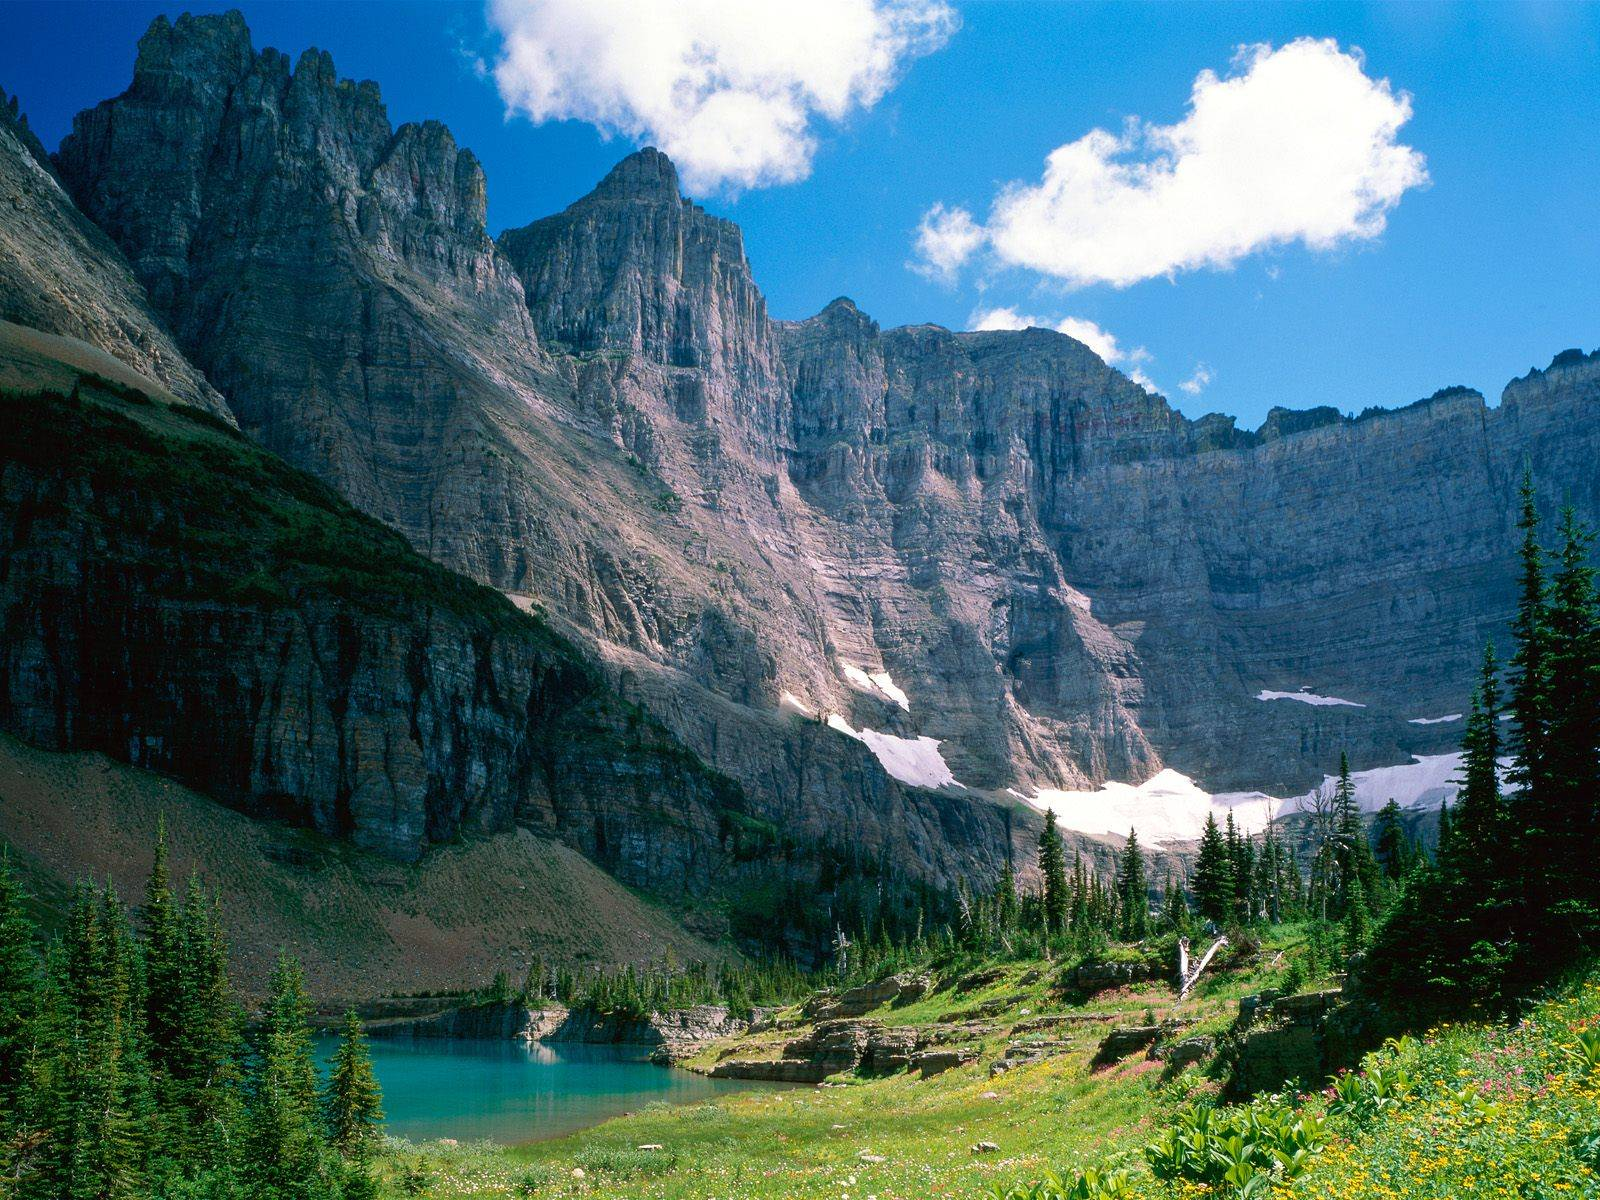 Findyourpark 5 National Parks To Visit On Your Next Vacation Partnership For A Healthier